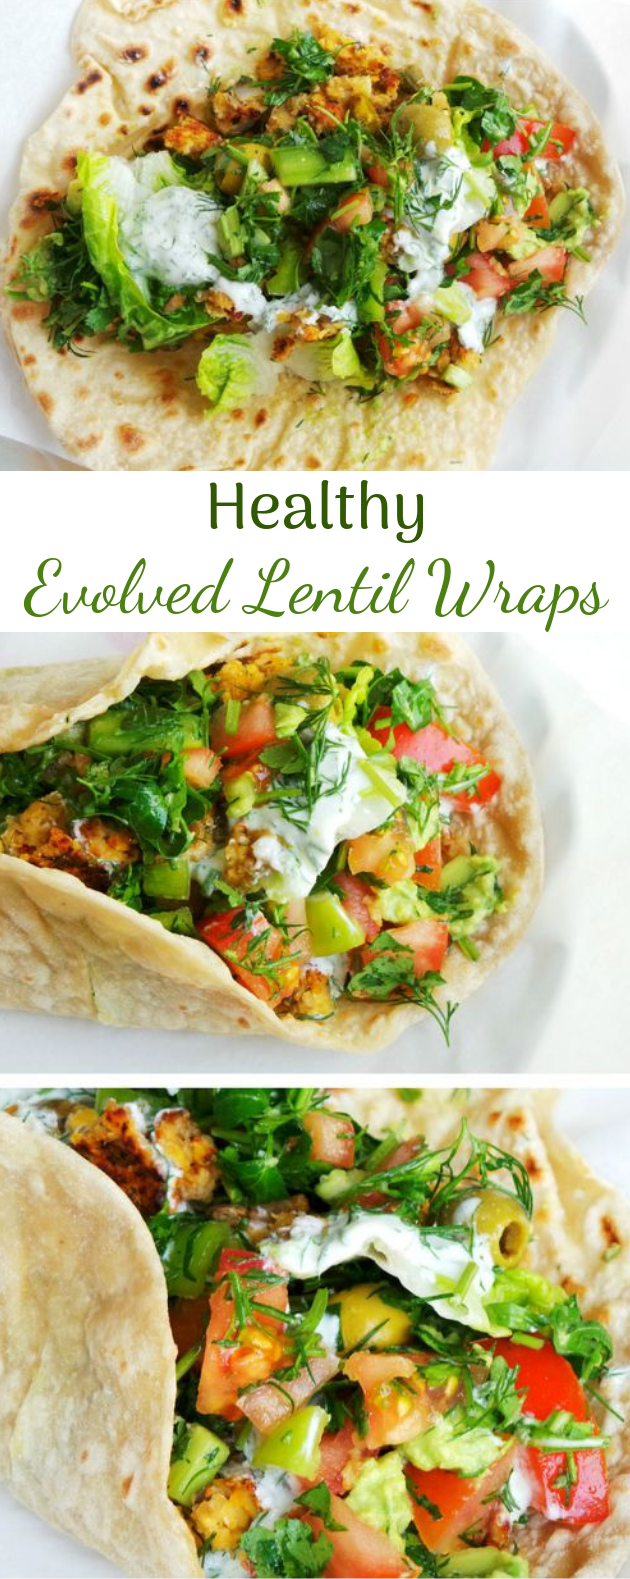 EVOLVED LENTIL WRAPS #veganmeal #healthy